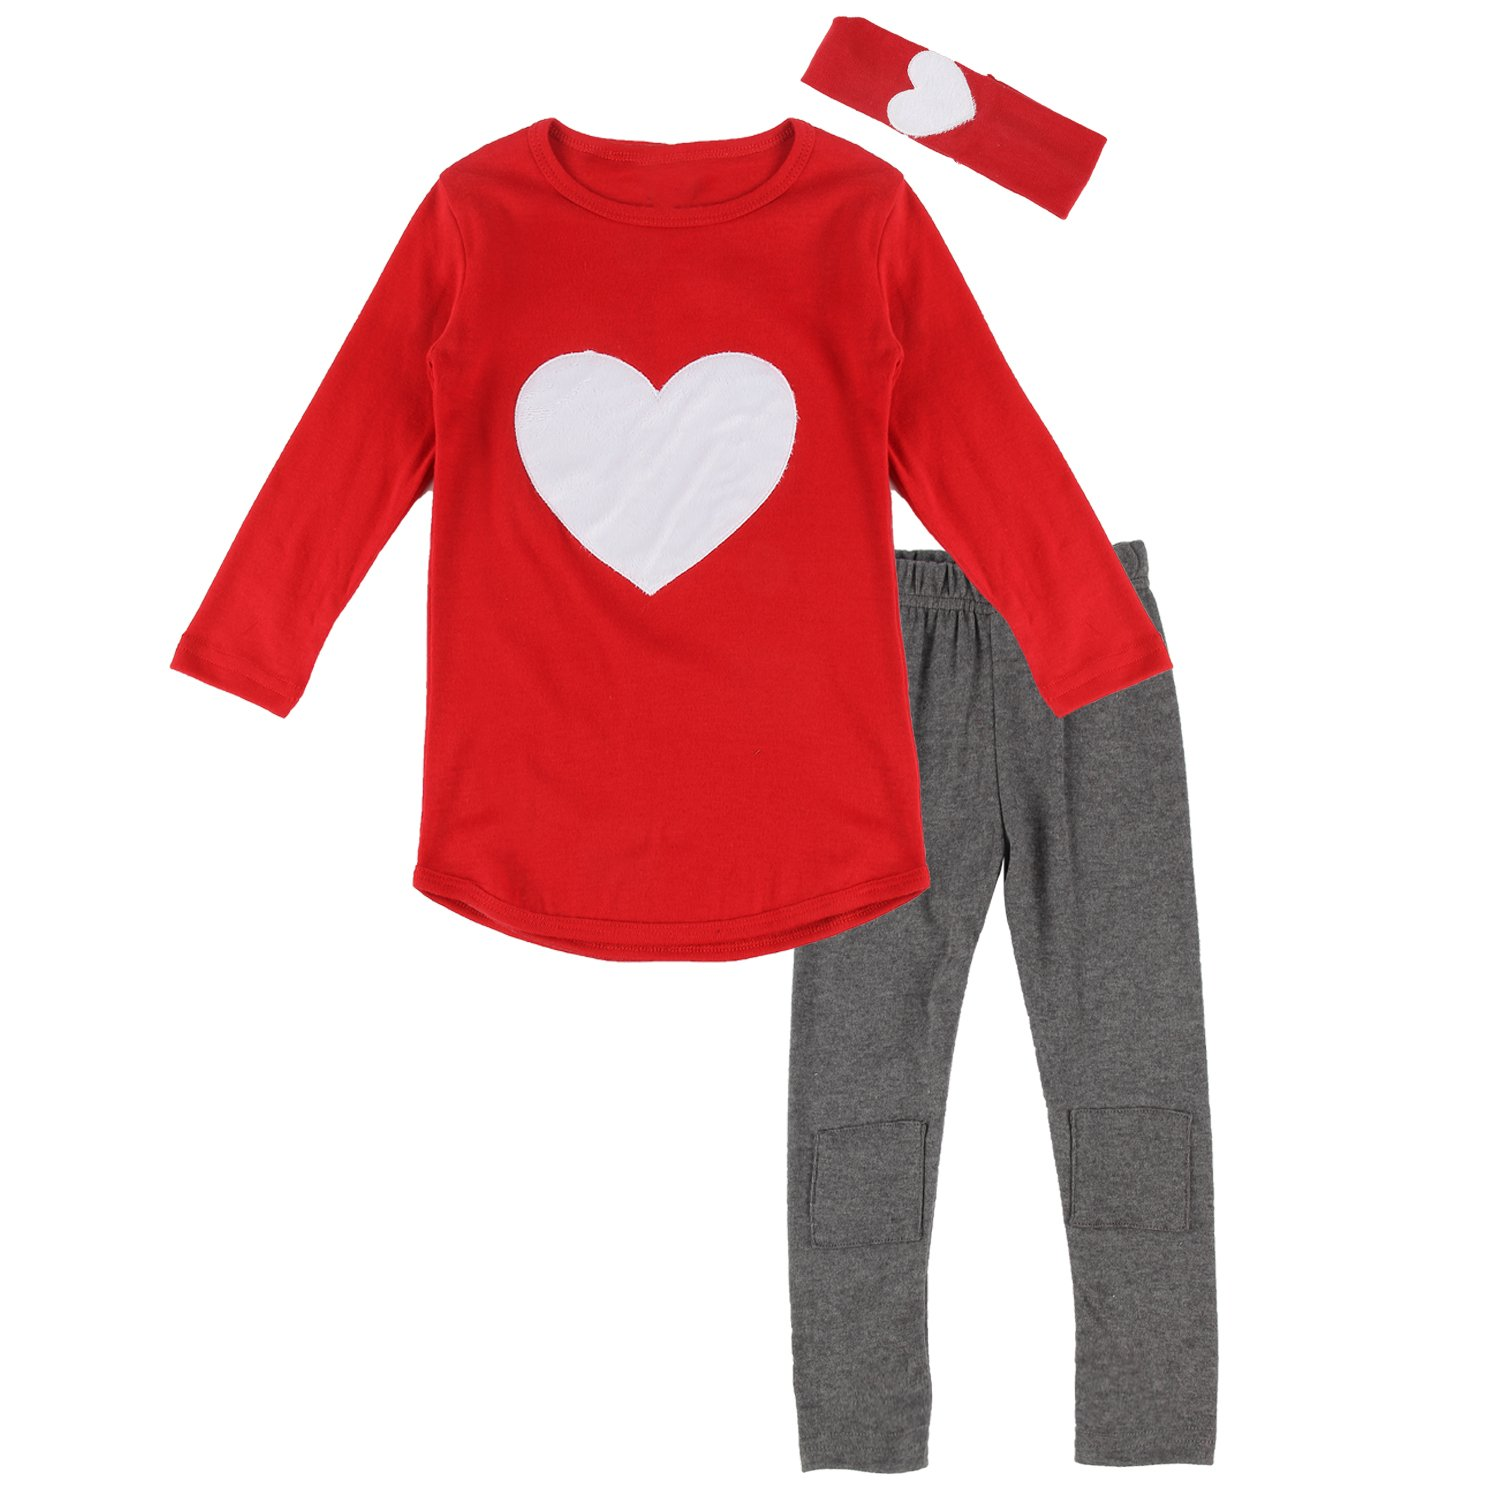 puseky Toddler Baby Girls Heart Long Sleeve Shirt Leggings Pant & Headband Outfits Set (3T, Red)